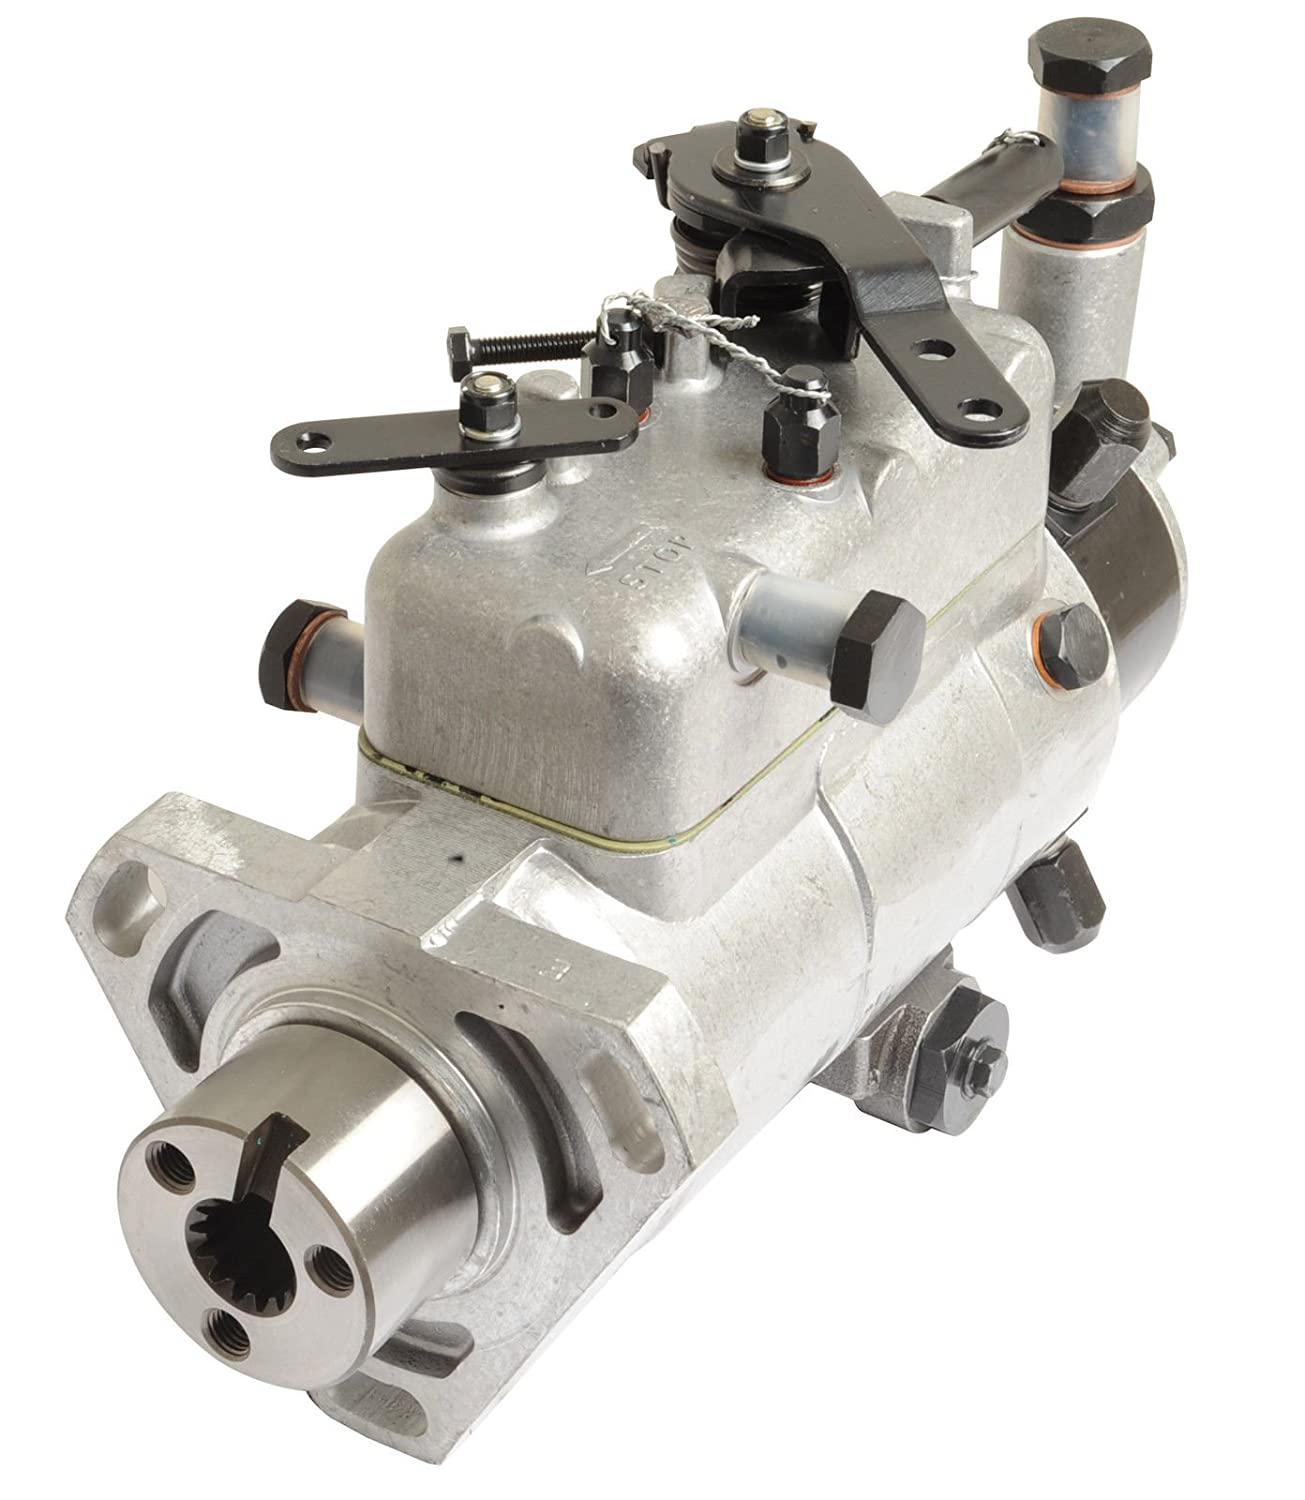 Ford 4000 4600 Tractor Cav Style Replacement Injection Pump 3233F390